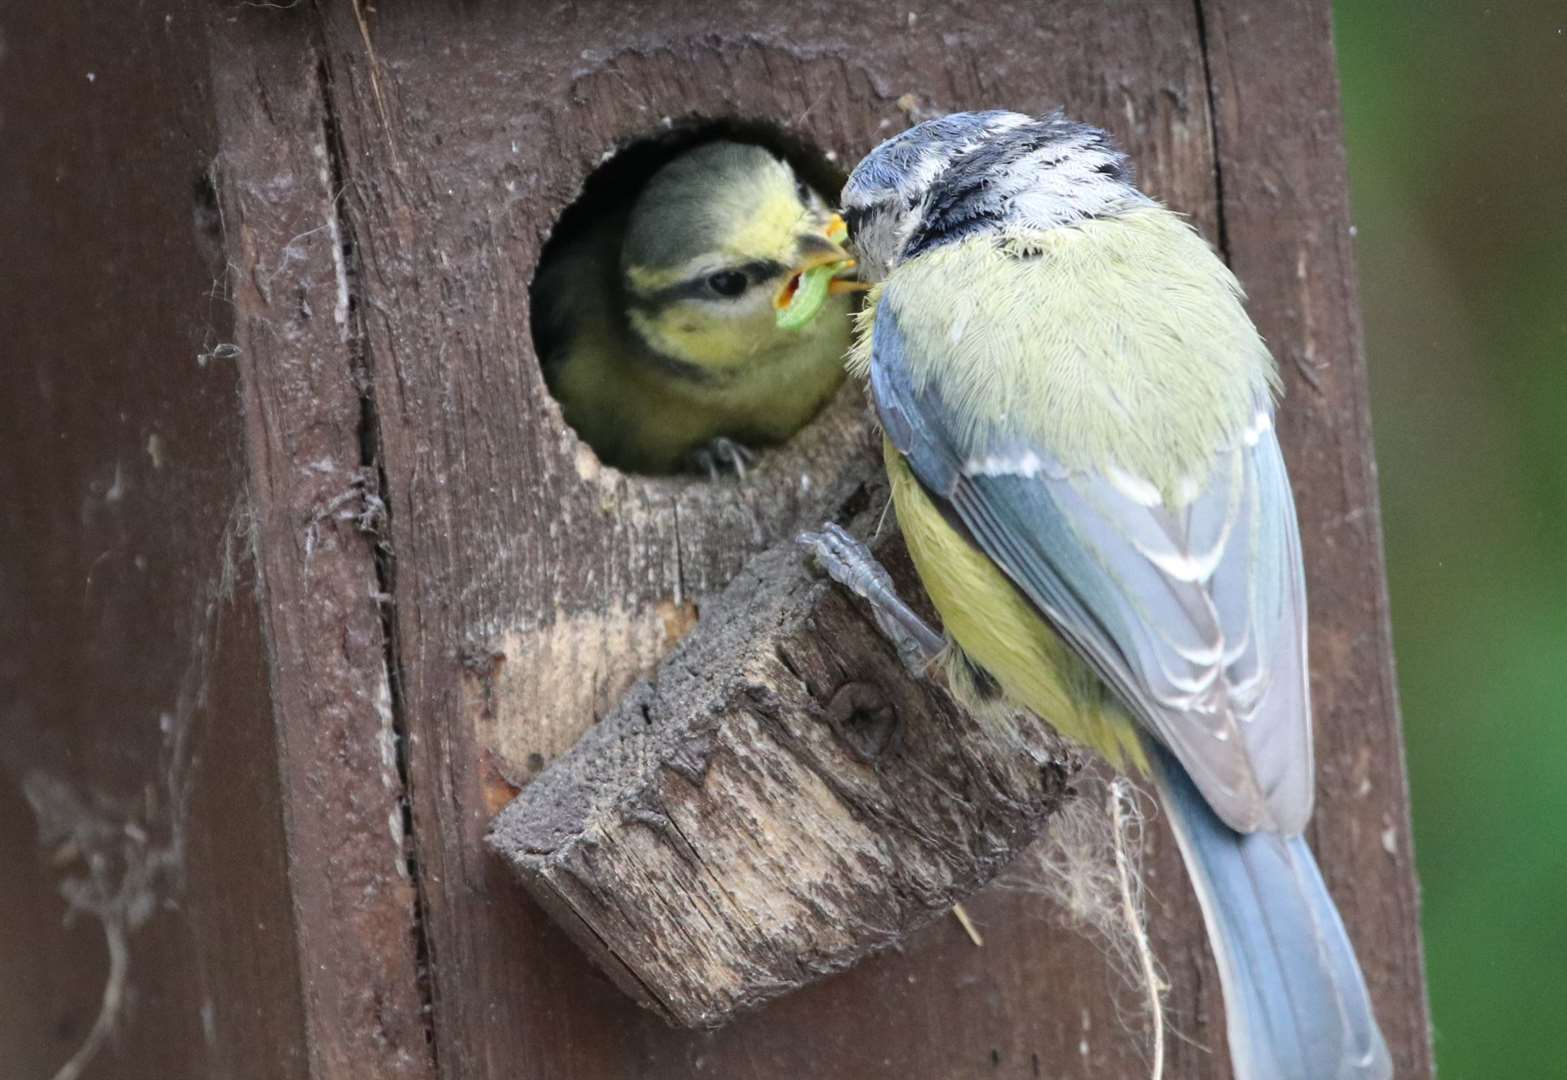 Amazing photos show a family of blue tits leaving their nest